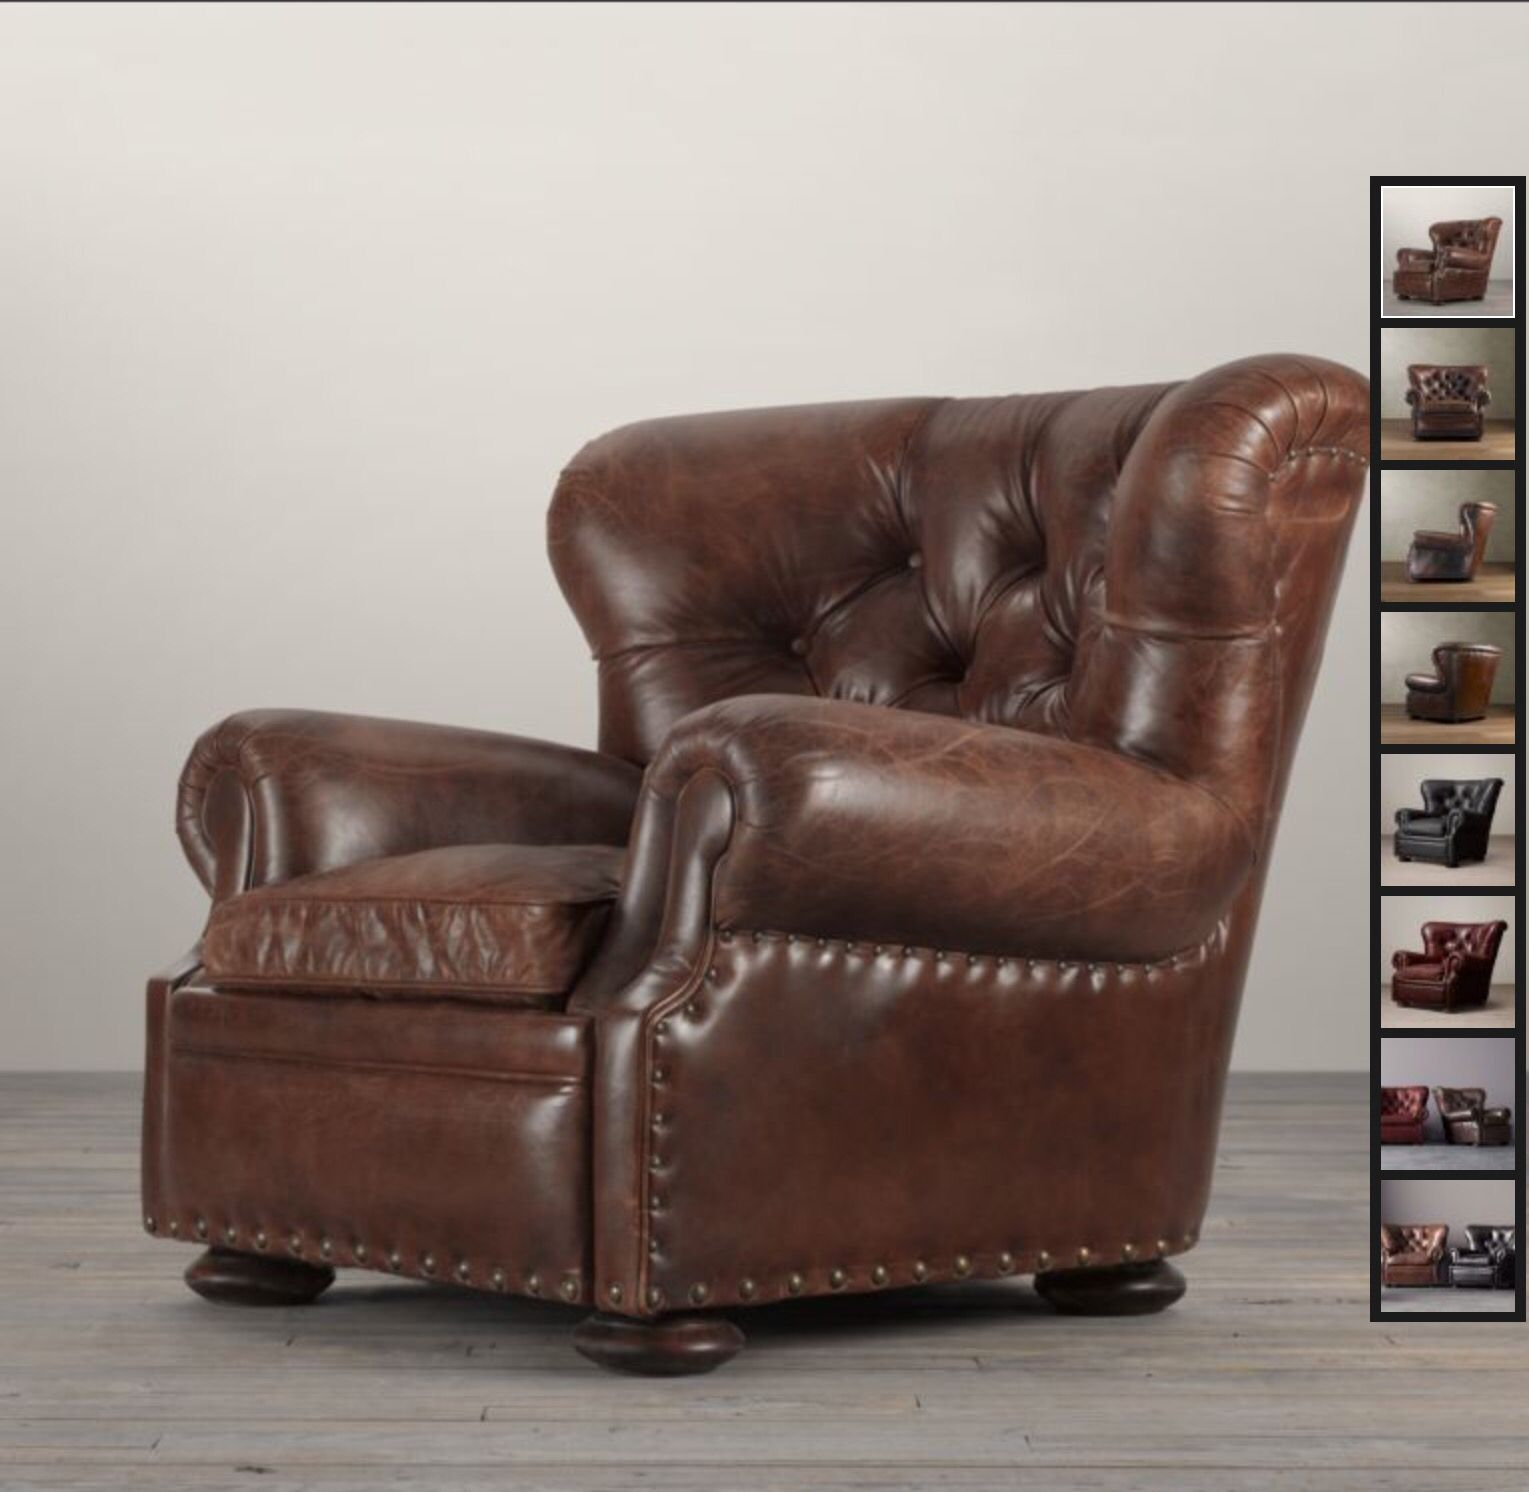 Restoration Hardware Churchill Chair fills the need for a big fy